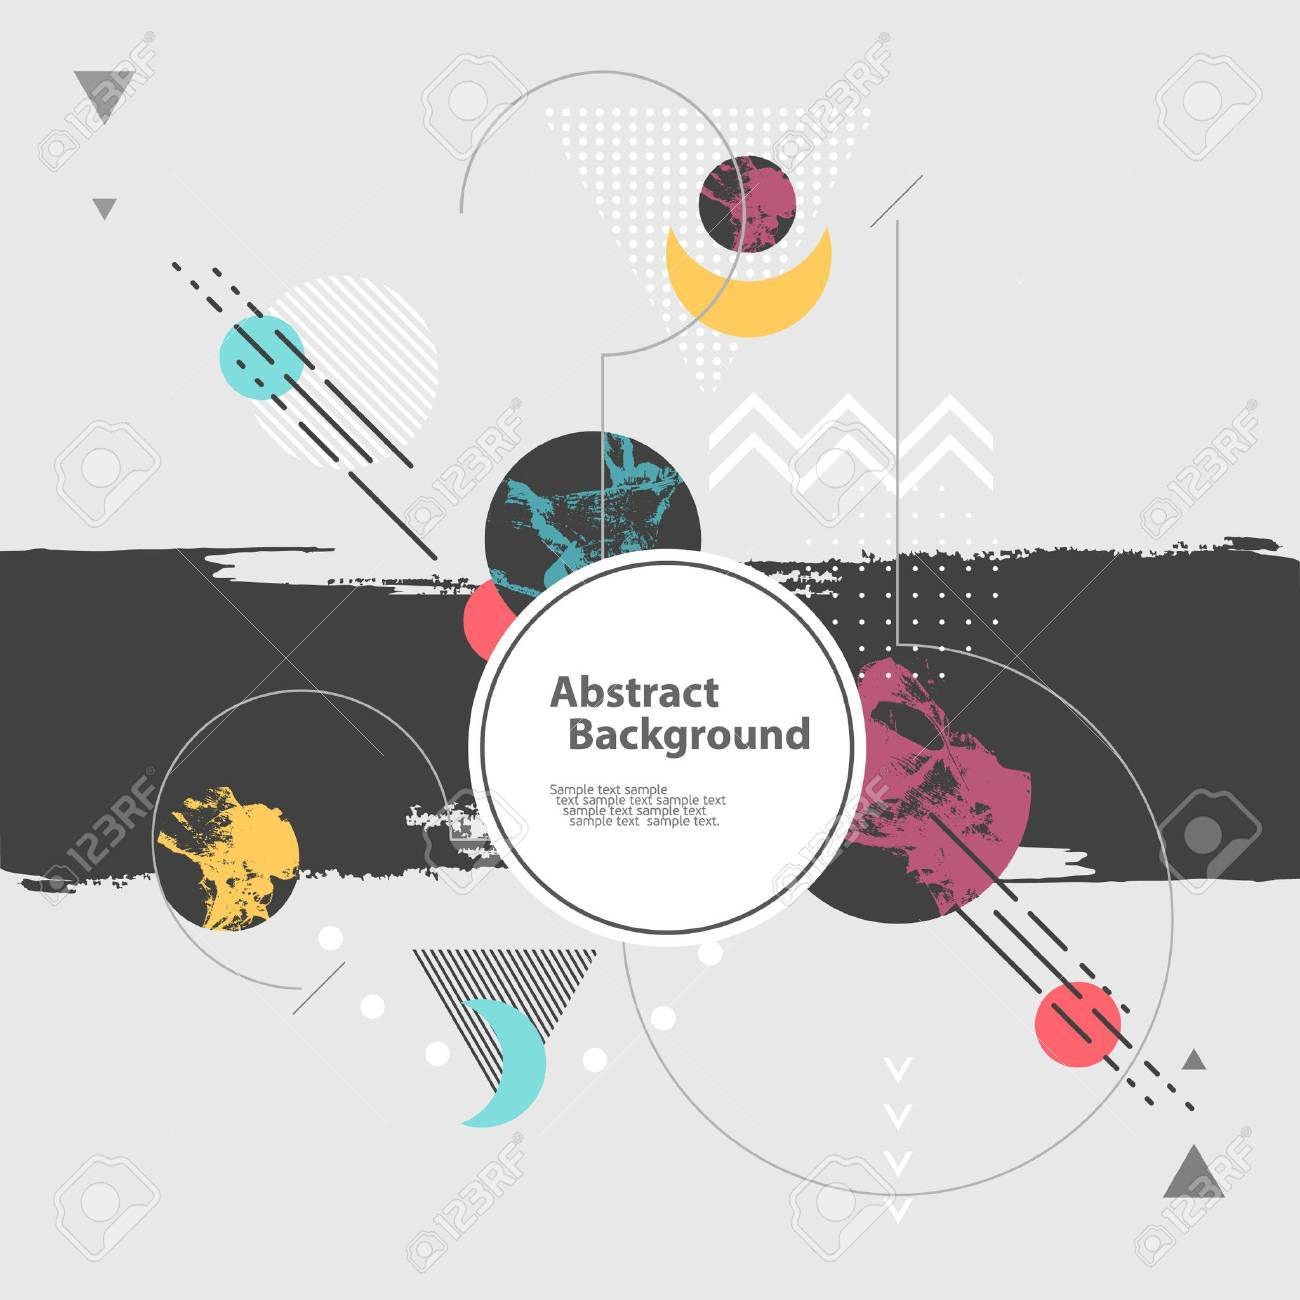 Abstract modern geometric background - 48825448